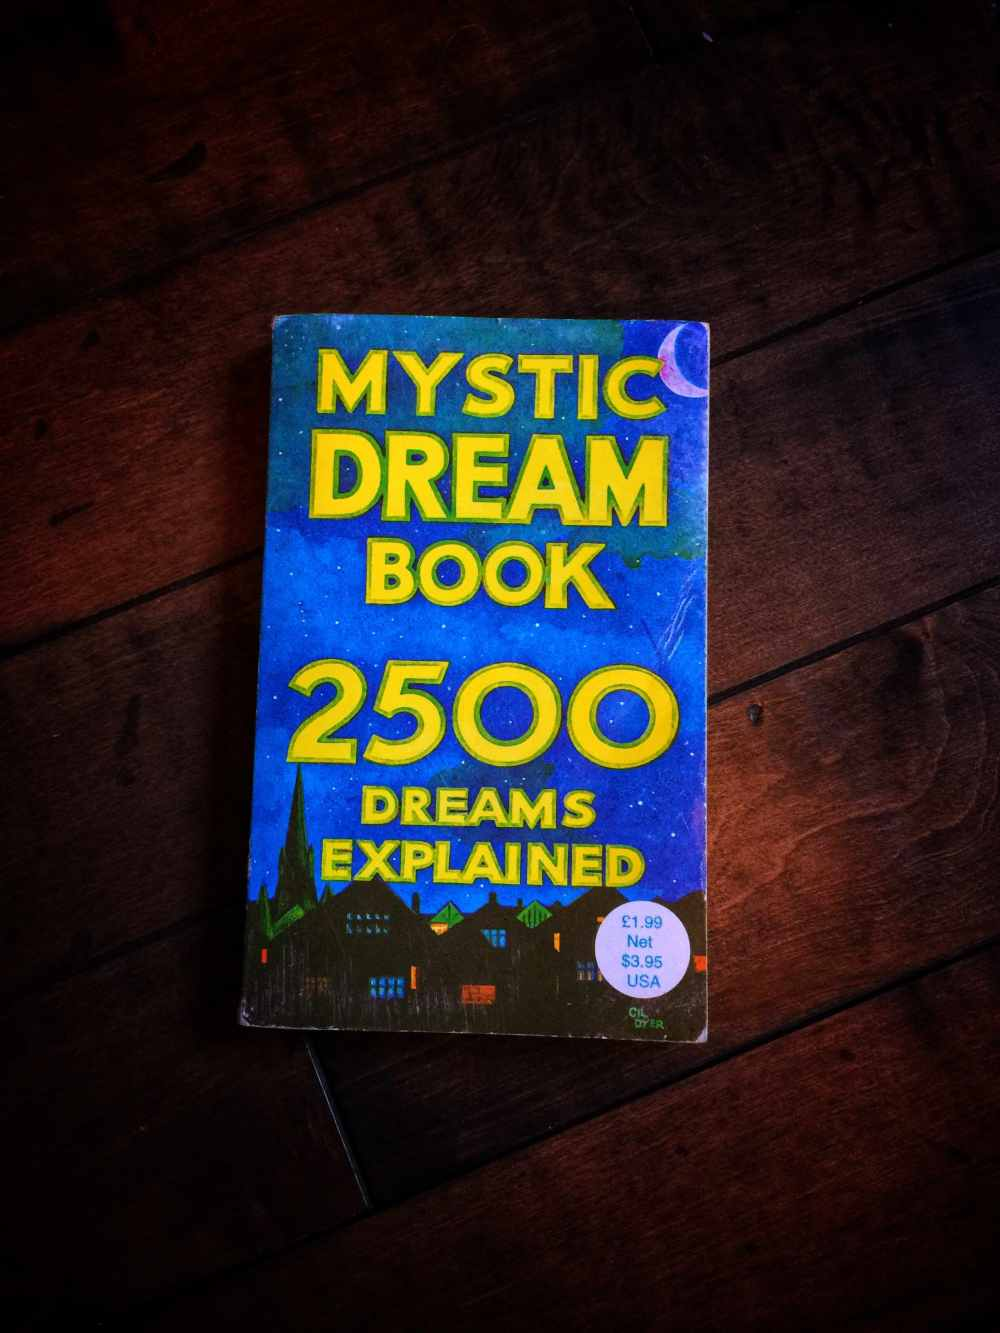 The Mystic Dream Book. 2500 Dreams Explained.